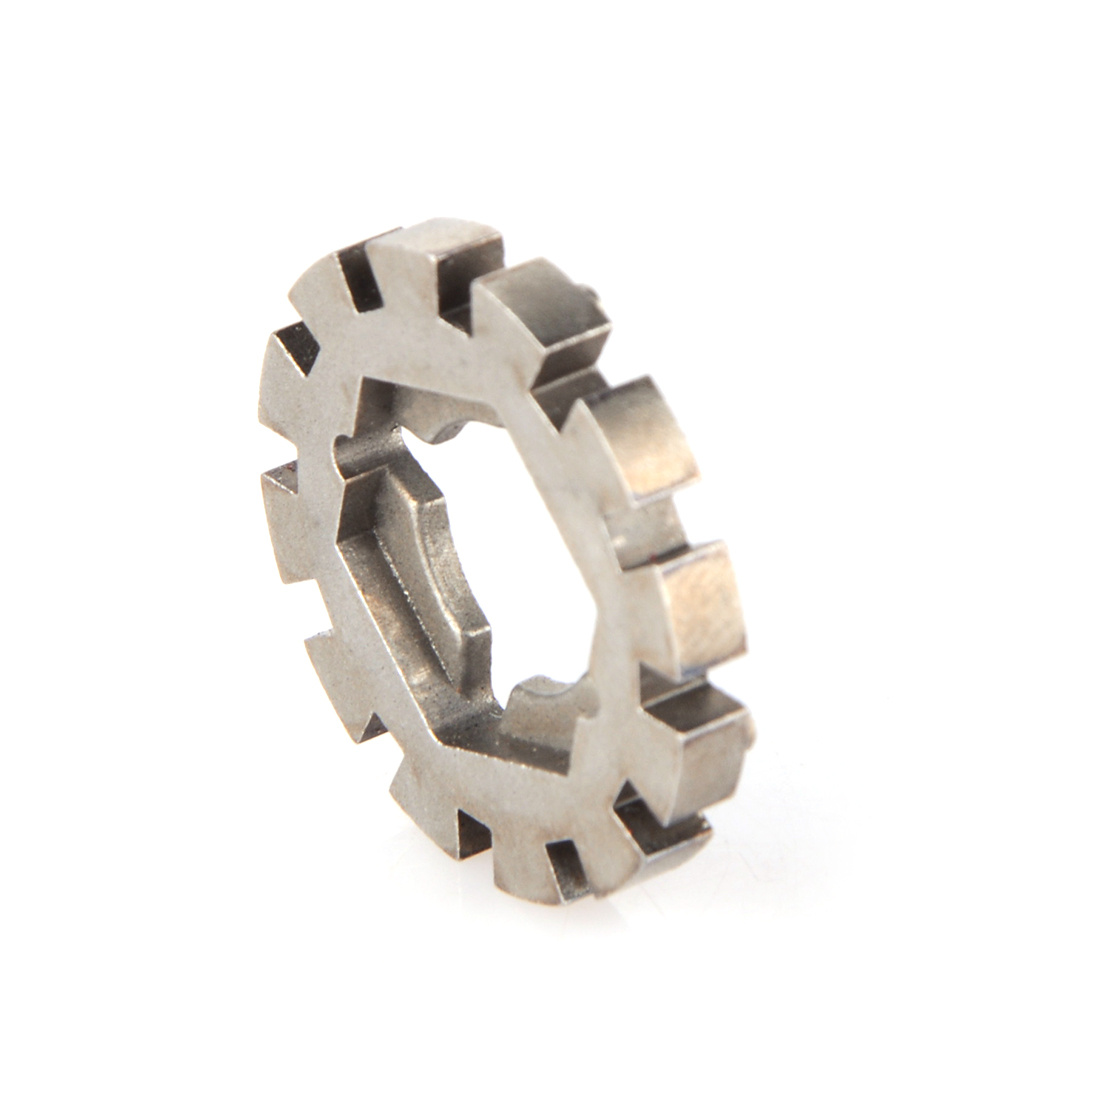 1Pcs Oscillating Multi Tools Shank Adapter For Universal Power Tool Multimaster Accessories Gasket